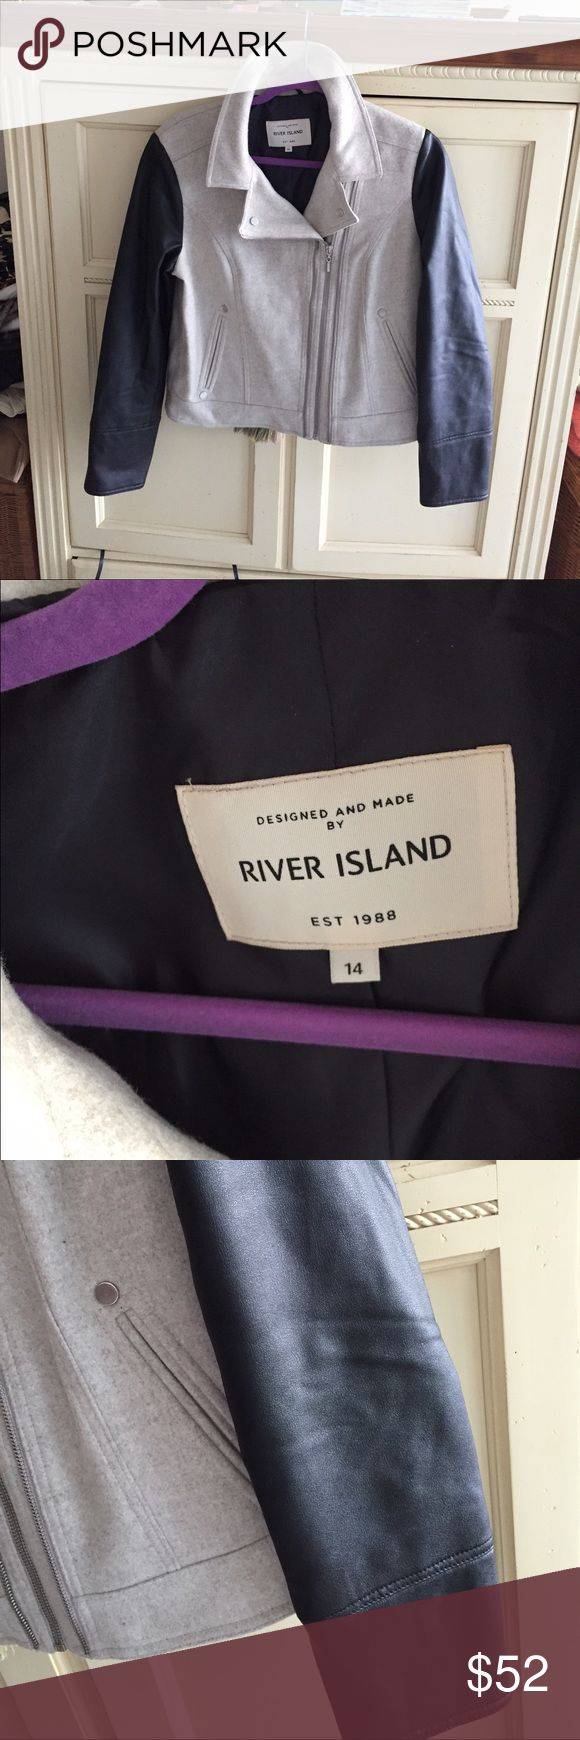 NWOT River island wool and PU leather jacket River island wool and PU leather jacket. Motorcycle style. New without tags. Size 14 but fits more like a 12. River Island Jackets & Coats